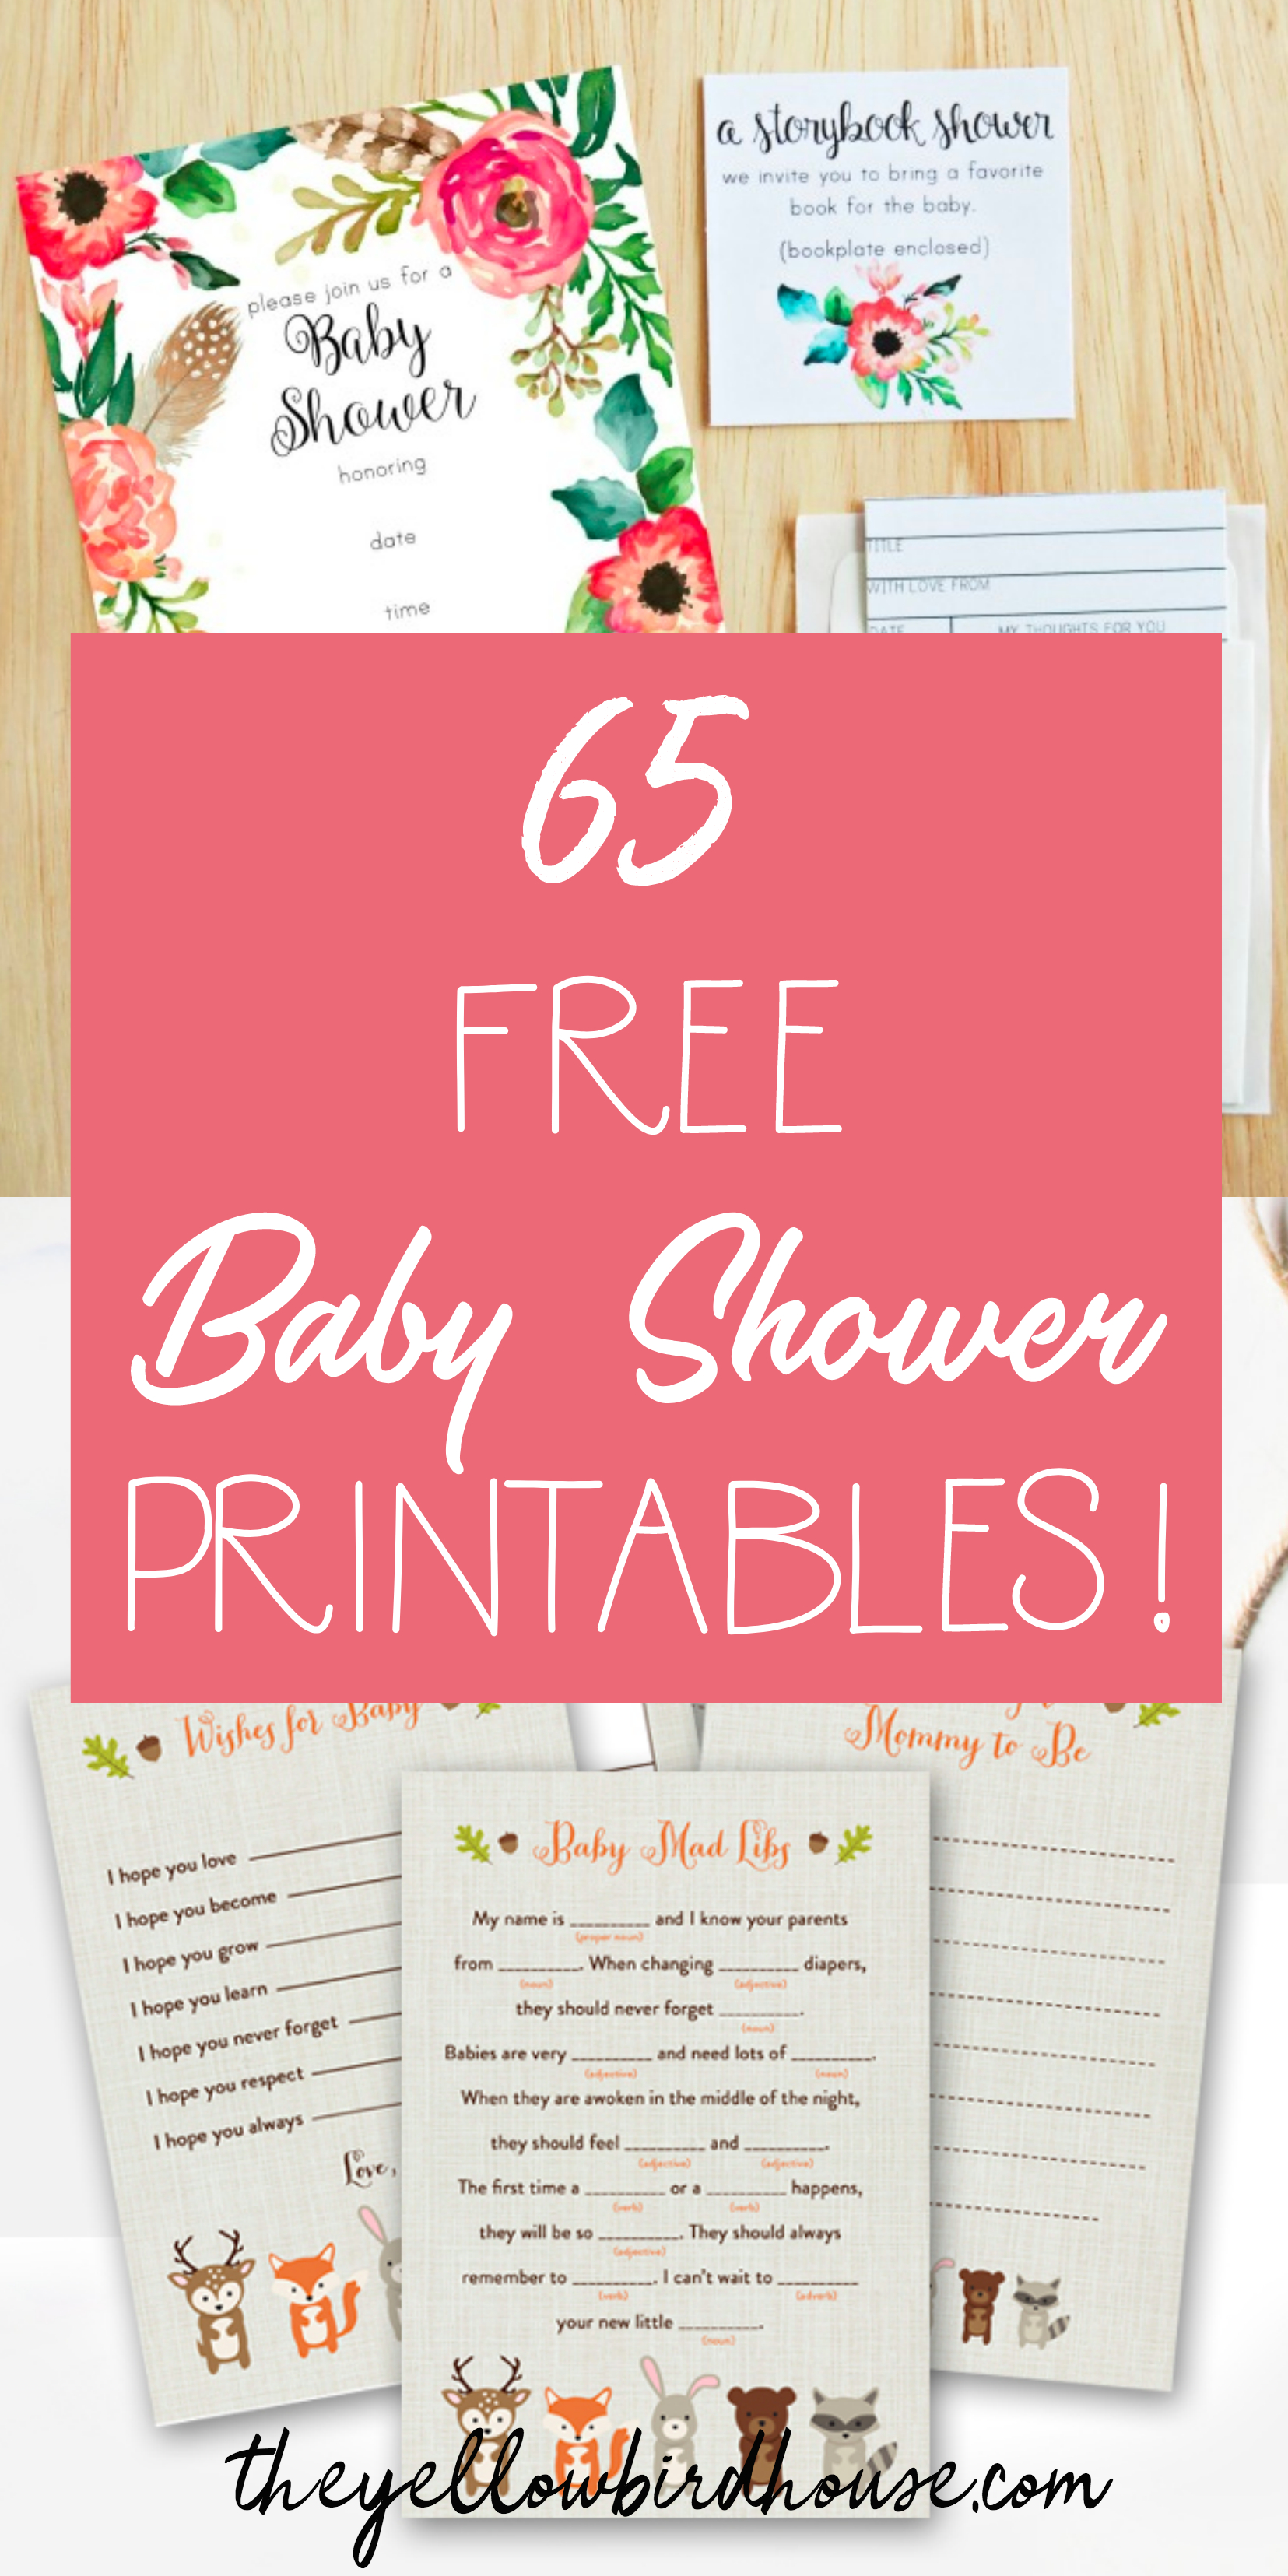 65 Free Baby Shower Printables For An Adorable Party - Free Printable Pink Zebra Baby Shower Invitations